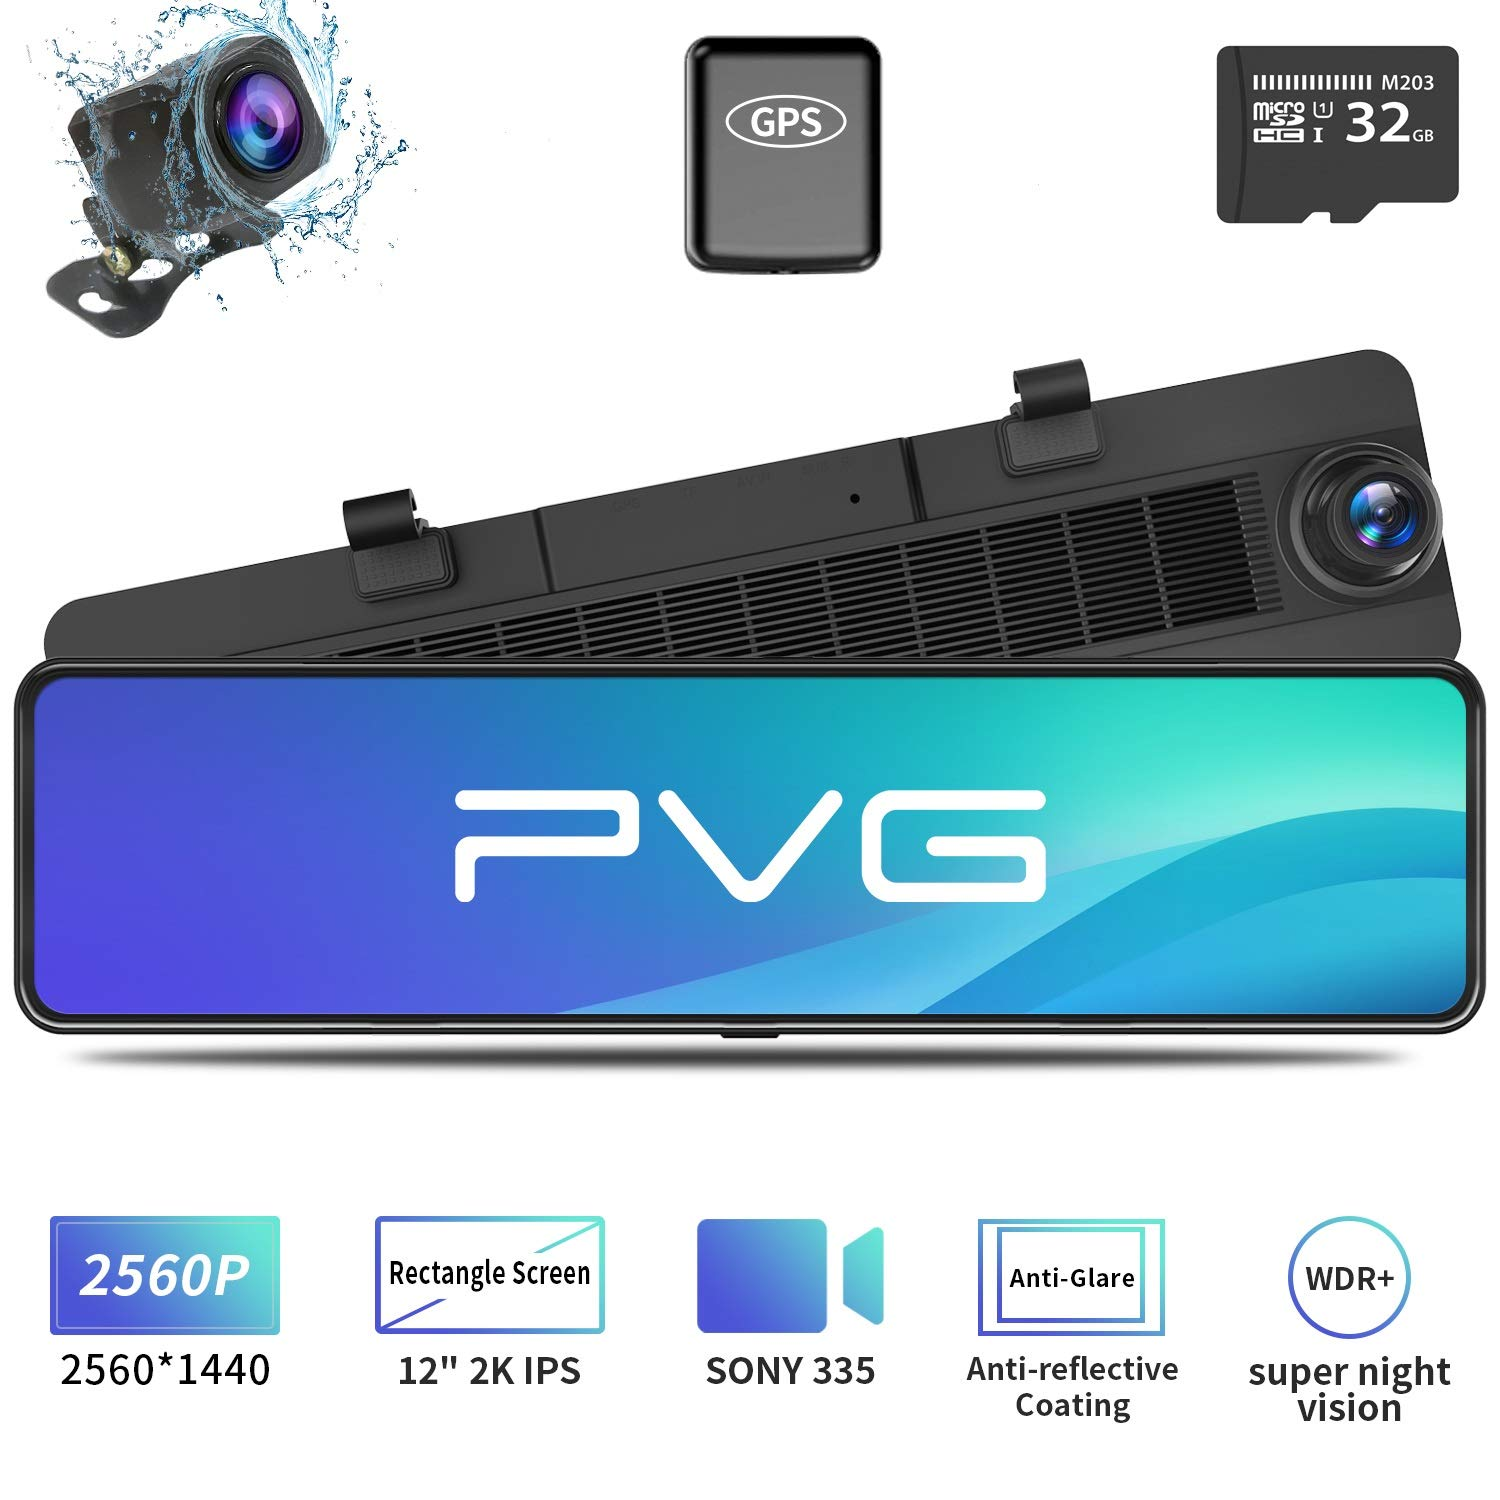 """Mirror Dash Cam Car Backup Camera 12"""" 2K IPS Full Touch Screen 2560P+1080P Resolution Front and Rear View Dual Lens, Adjustable Wide Angle, WDR Night Vision, Parking Monitor, GPS & 32GB Card Included"""